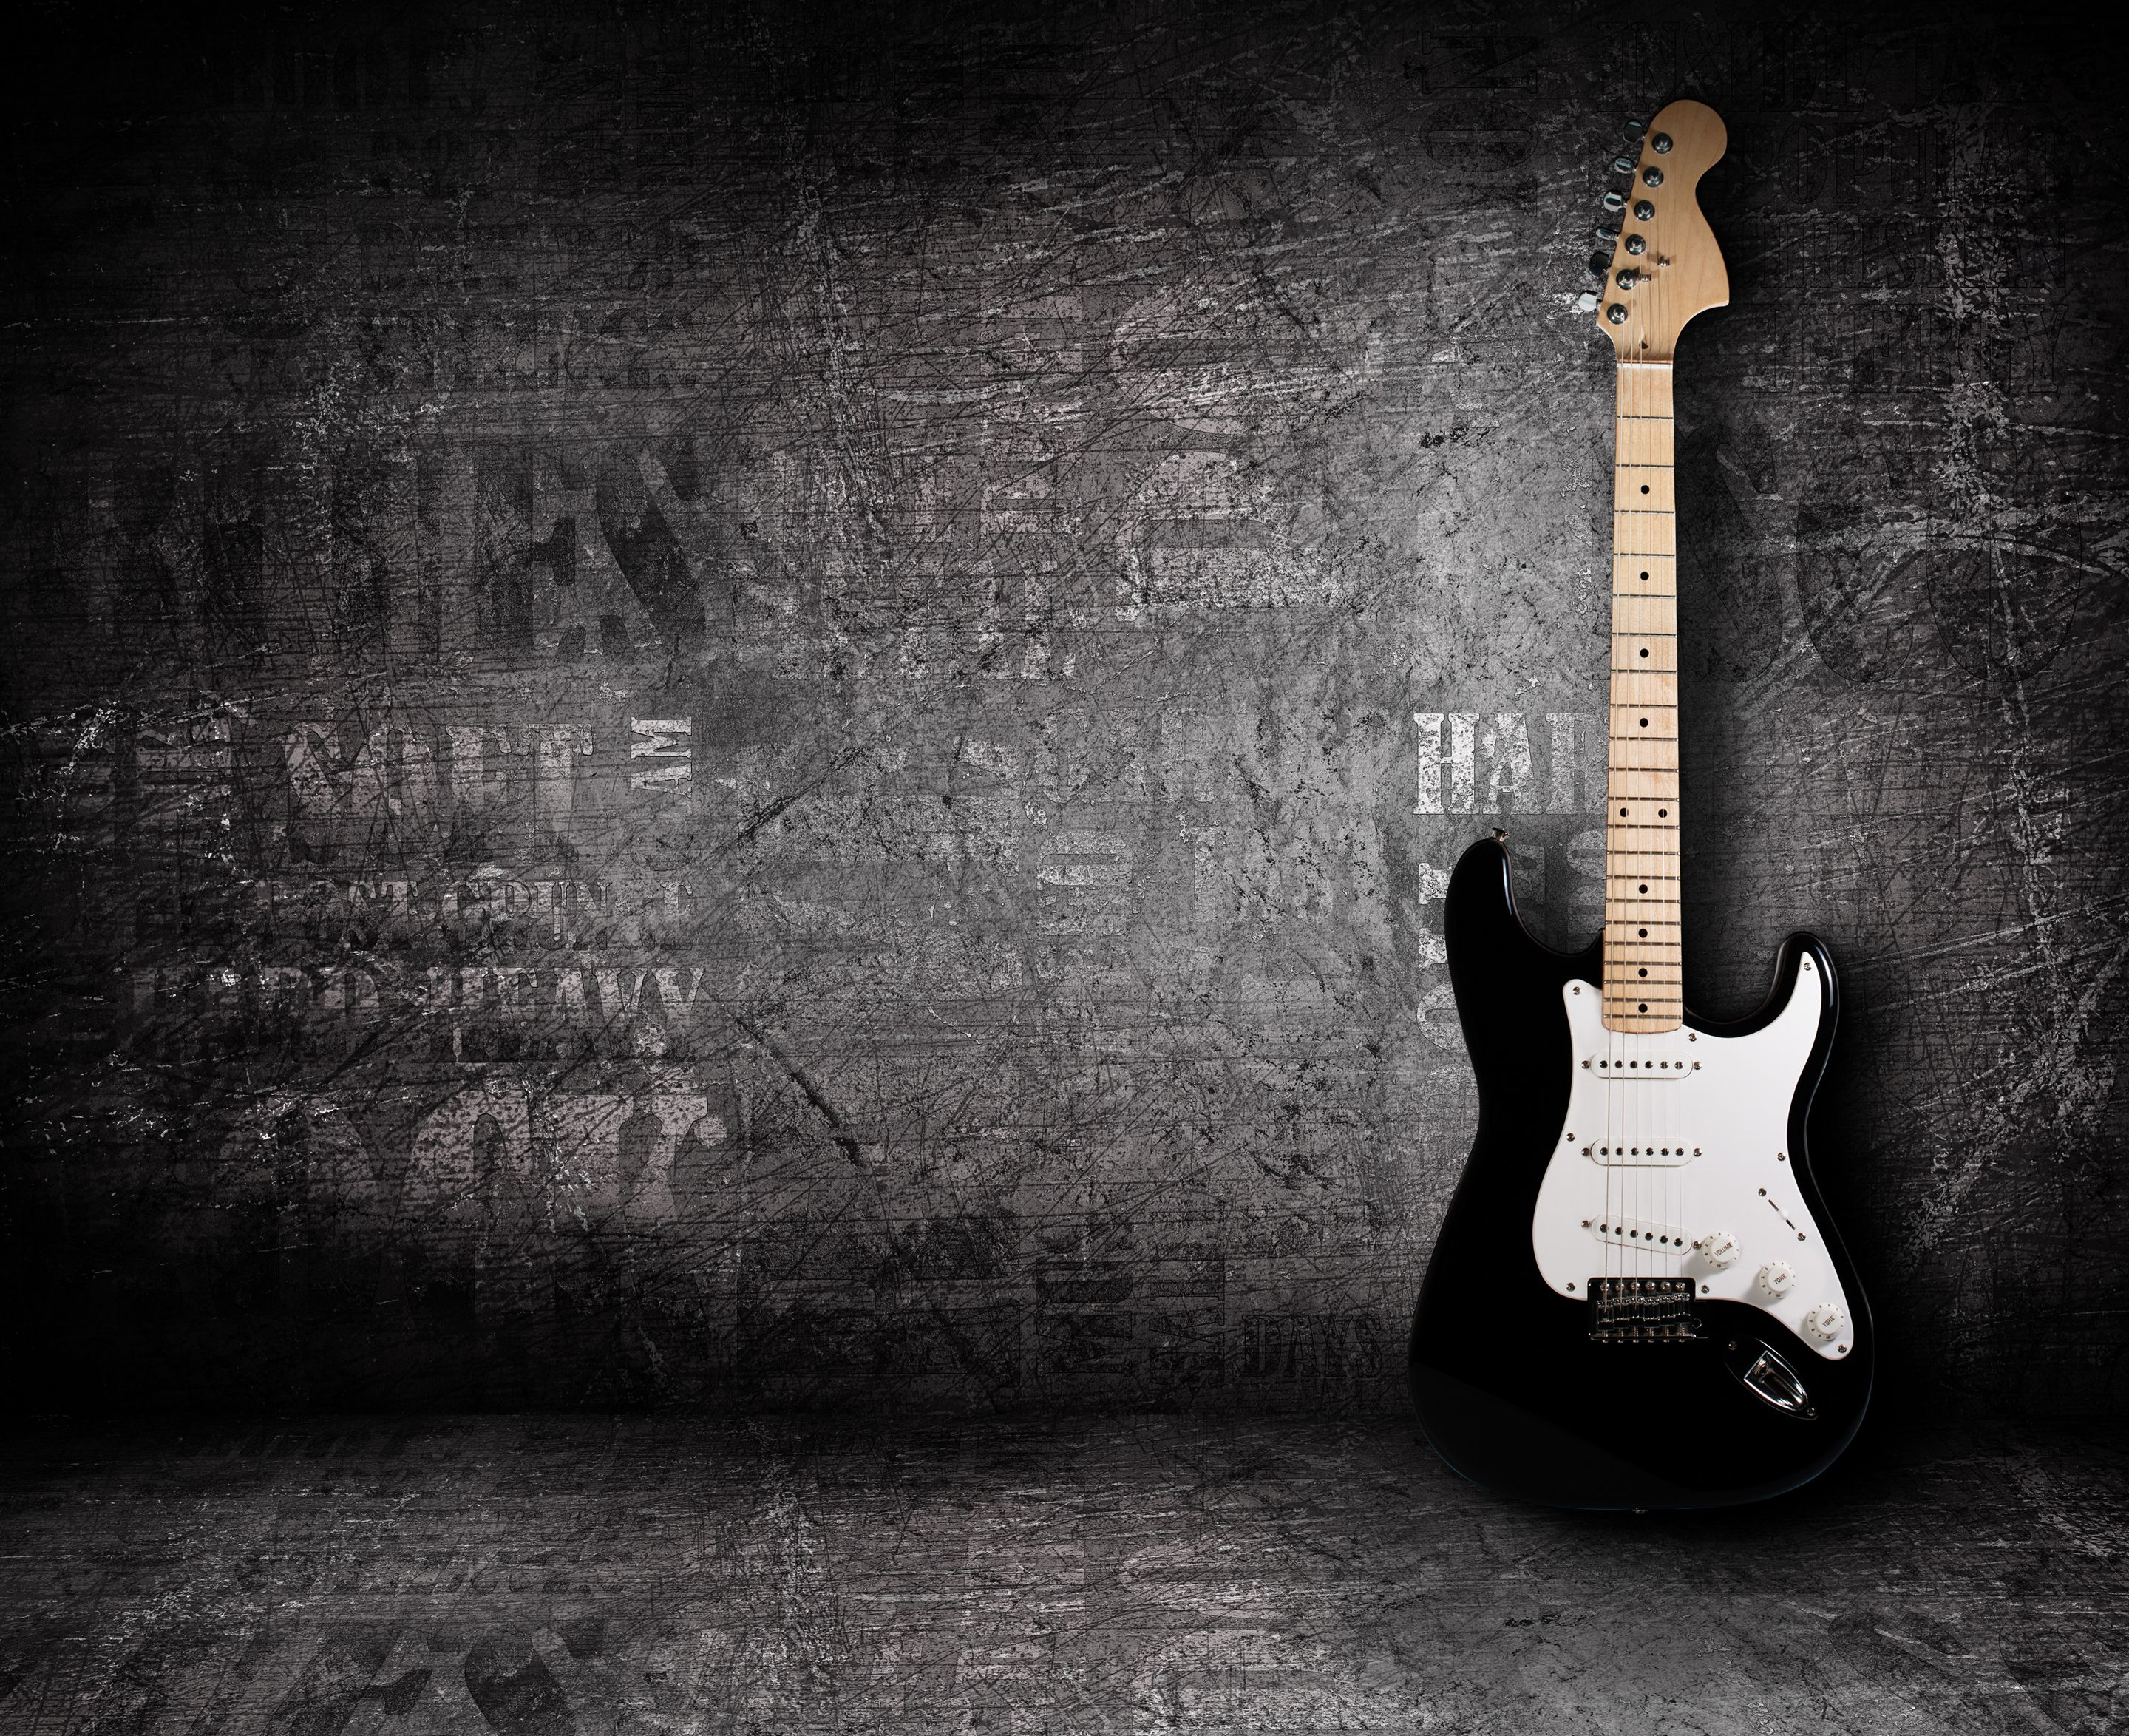 guitar hd desktop wallpaper widescreen high definition hd